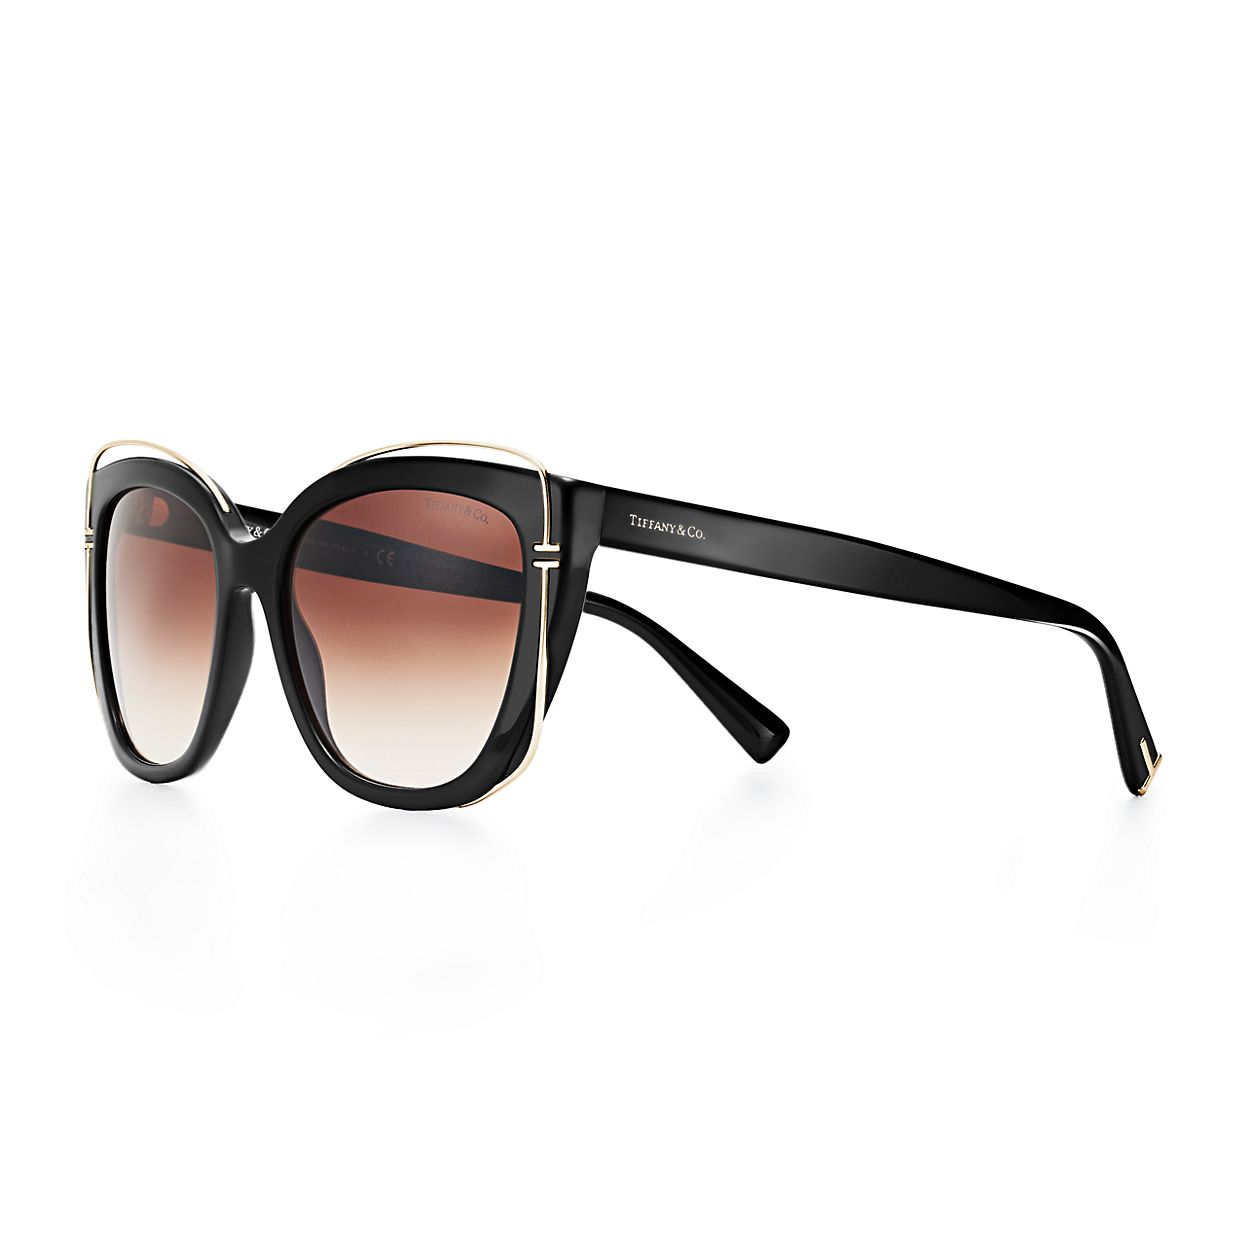 f22b488405282 Tiffany T cat eye sunglasses in black acetate and pale gold-colored ...